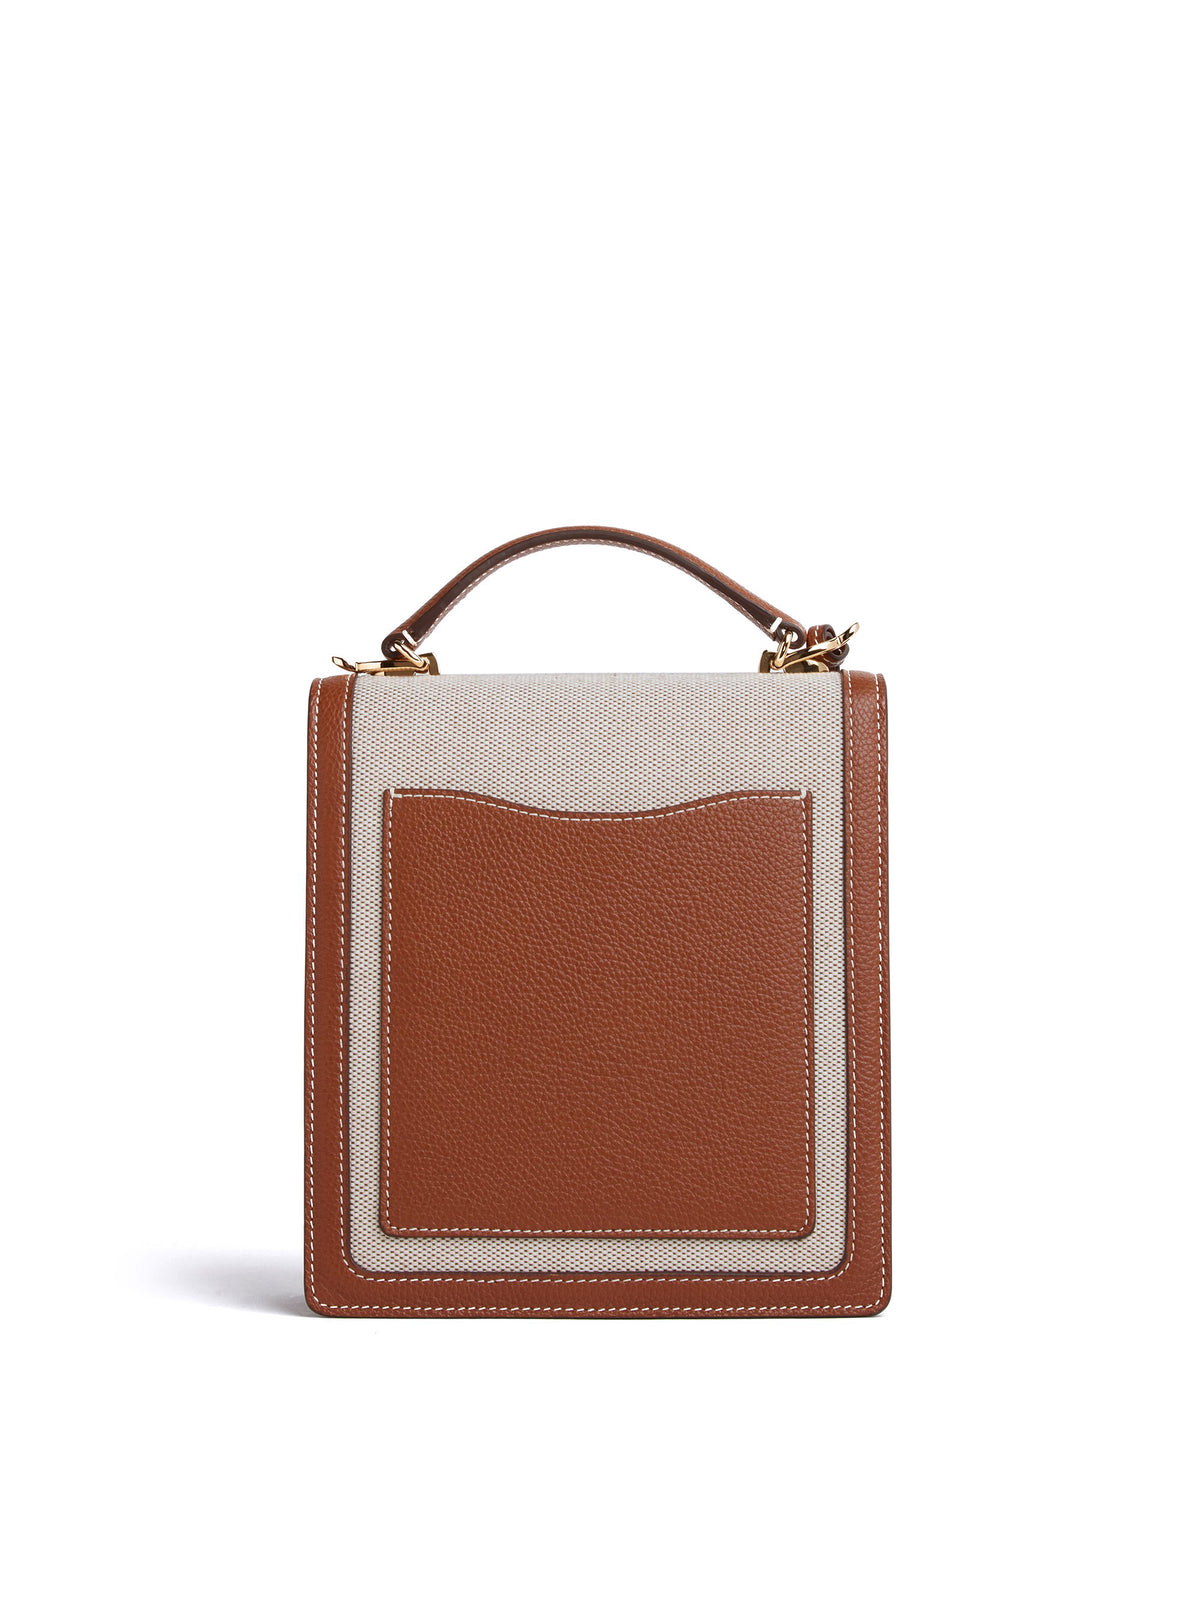 Uptown Birdseye & Leather Crossbody Bag